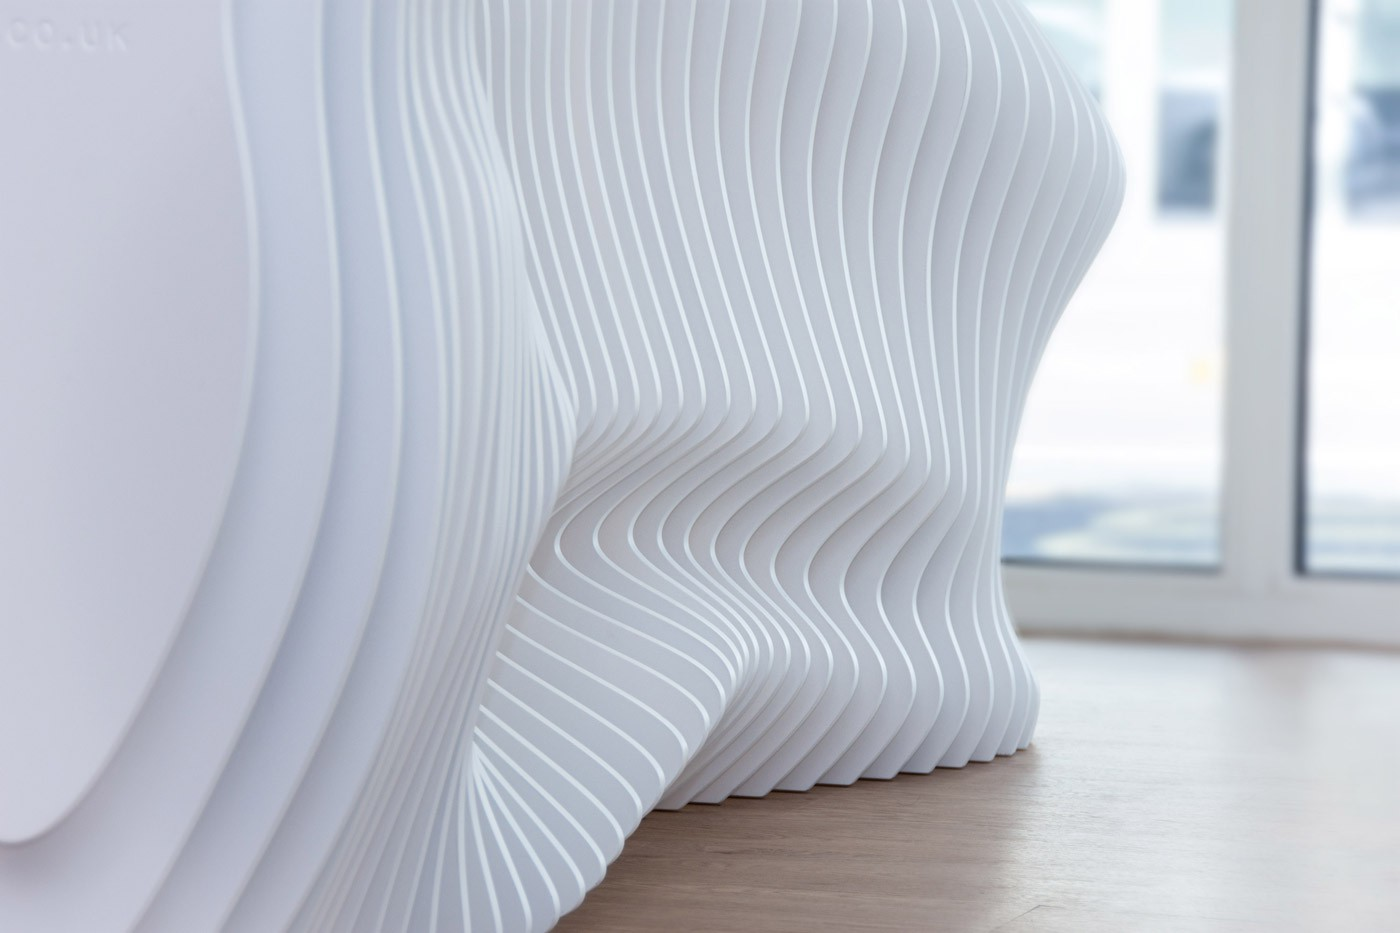 A close up photo of the detail in the bespoke reception desk at the Banning Dental Group Brentford office